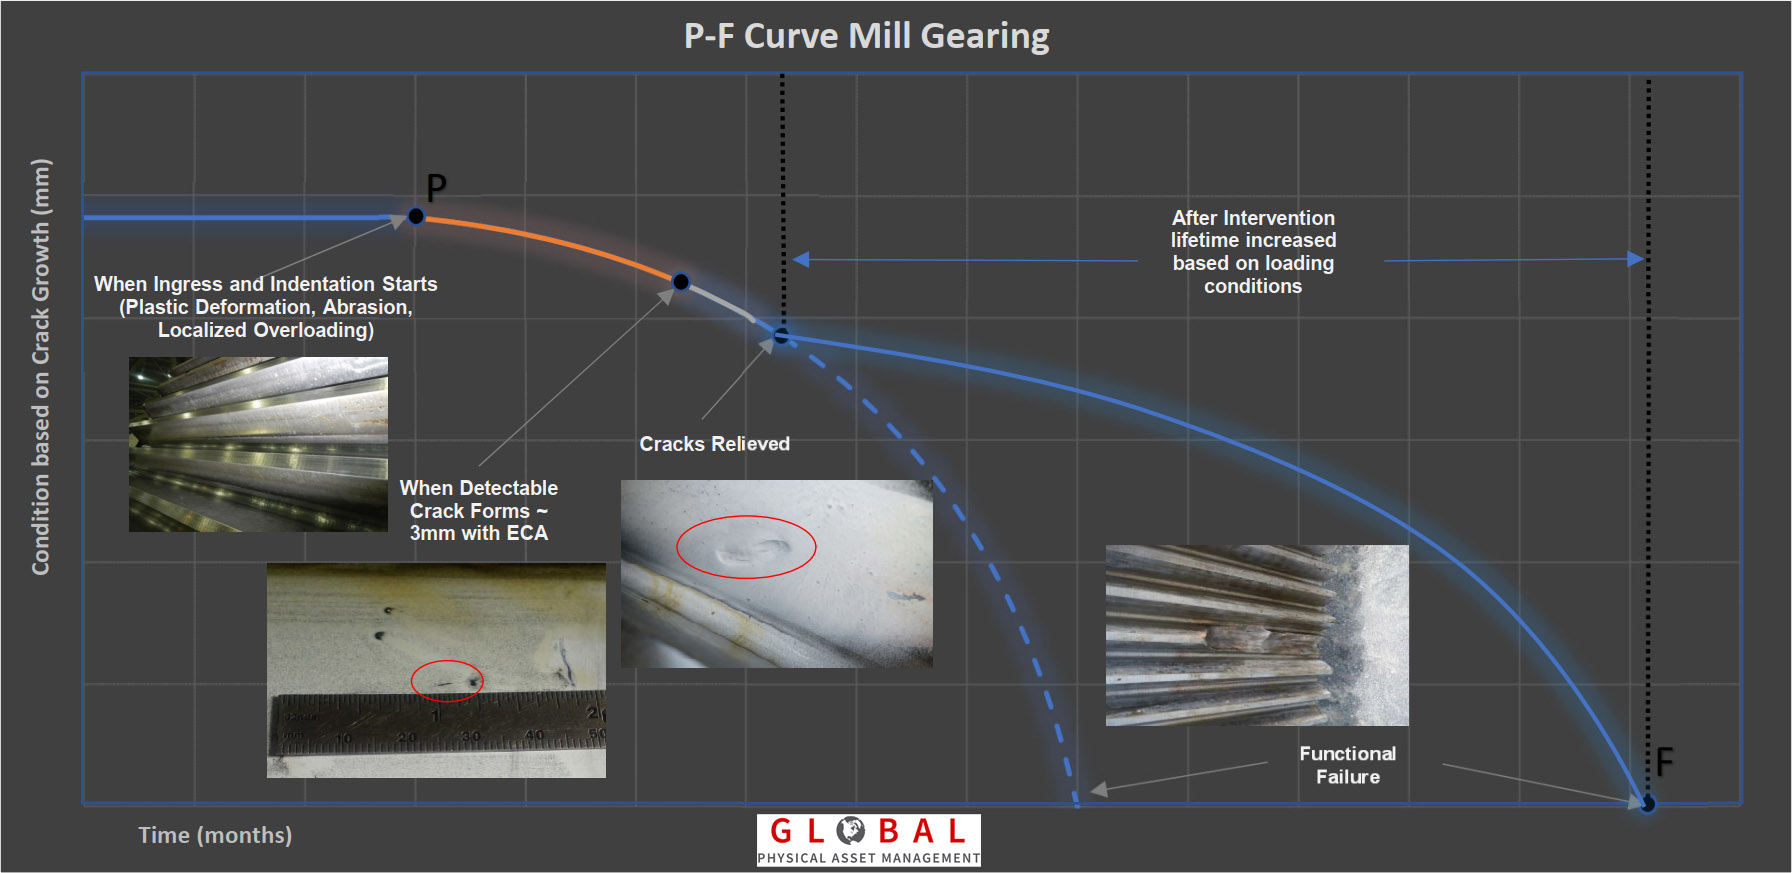 P-F Curve Mill Gearing